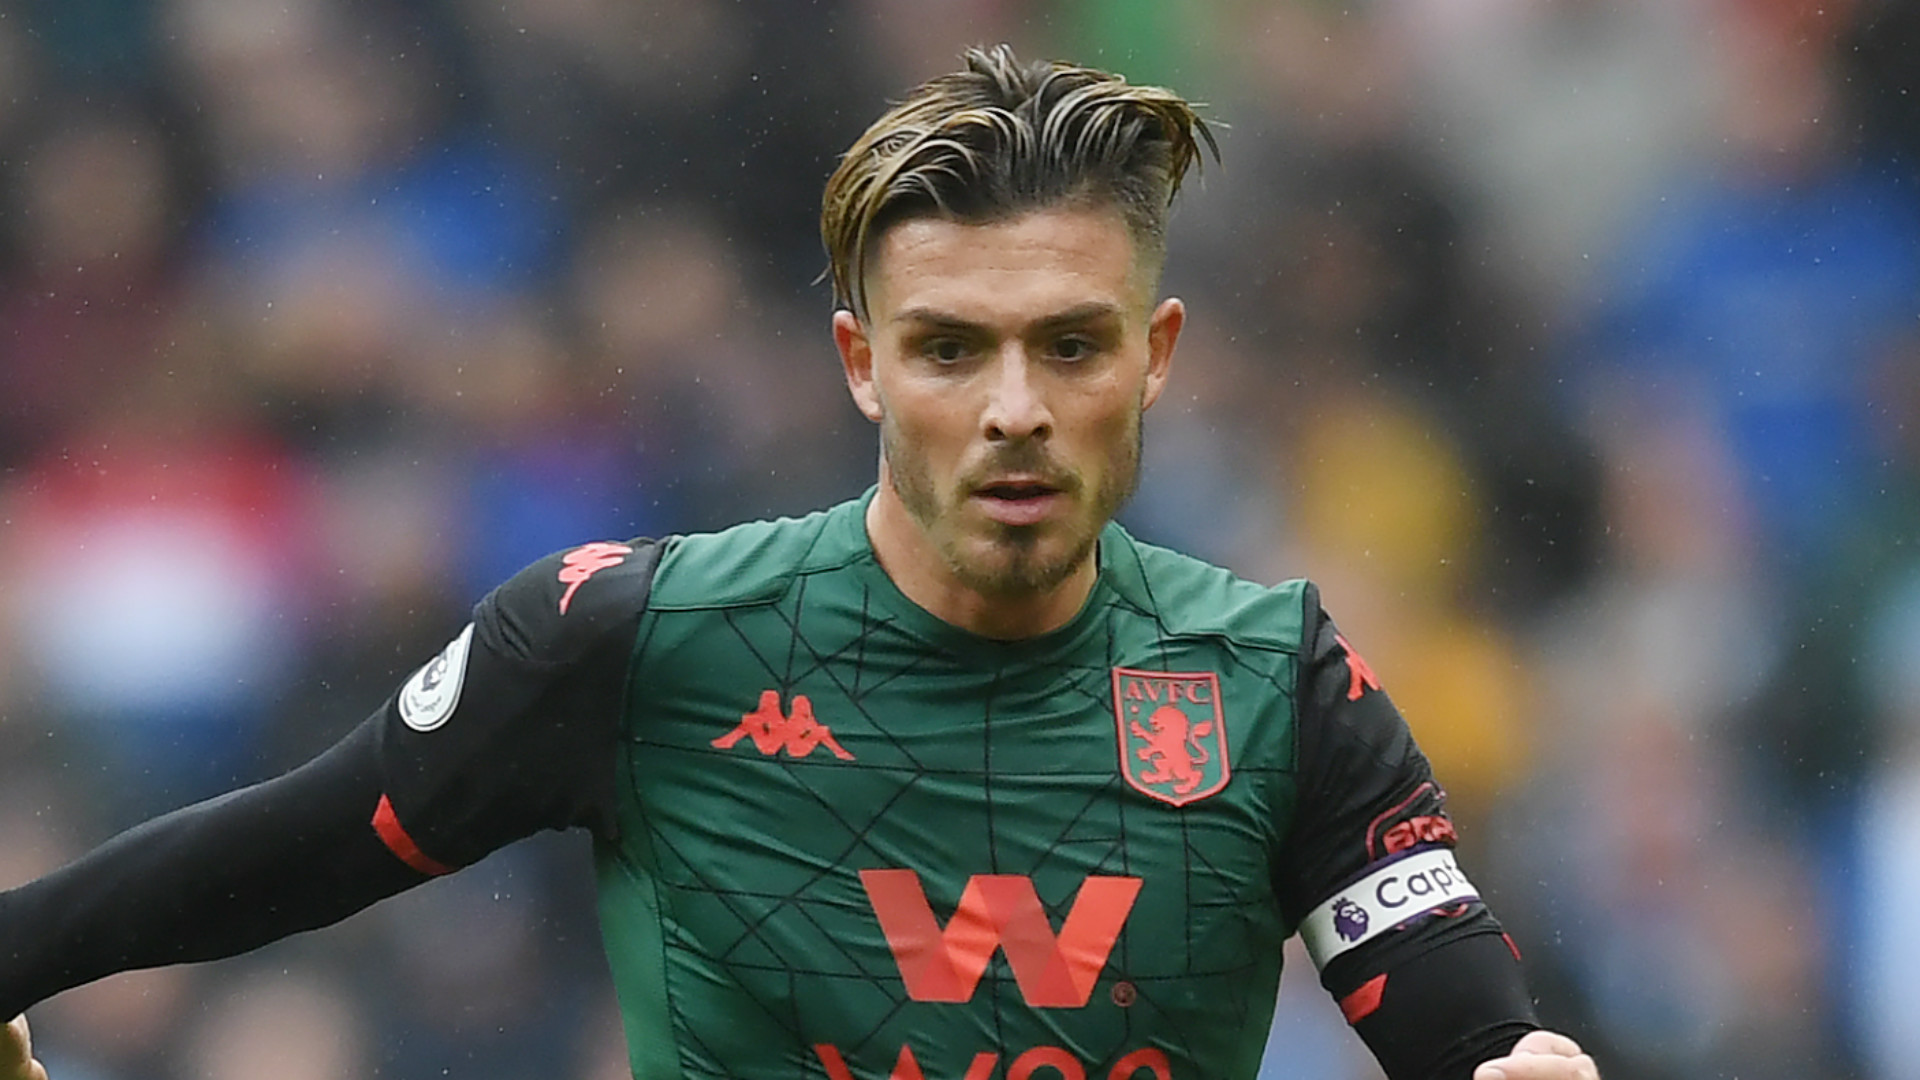 Man Utd will have no room for Pogba if Grealish comes in - Sharpe